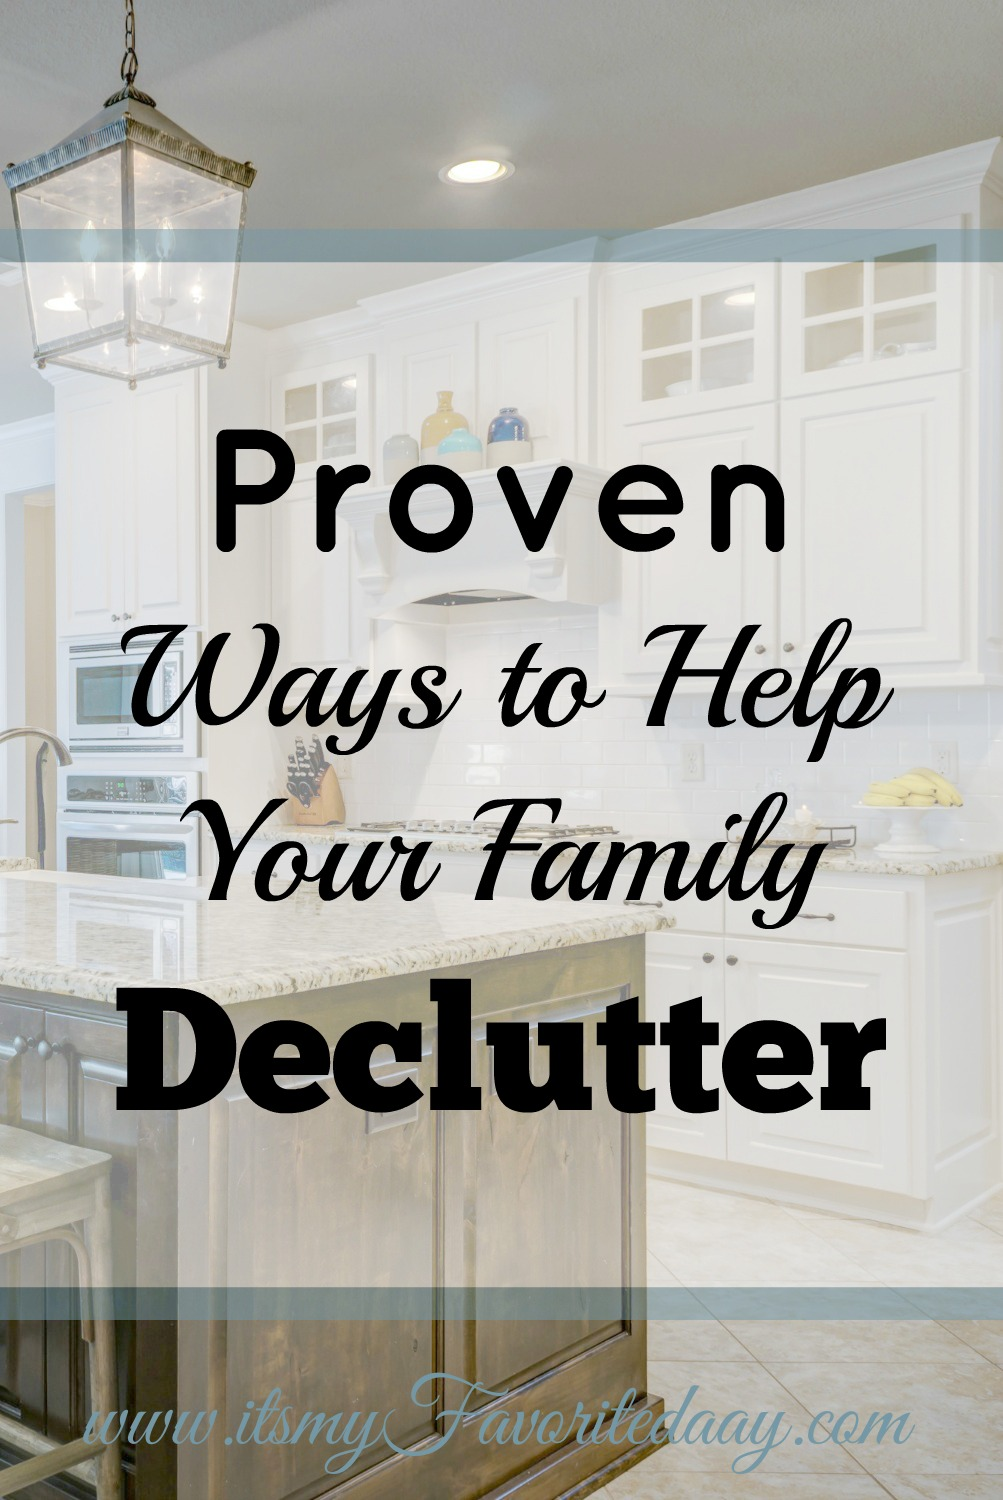 If you are serious about helping your family declutter and finally get organized then you MUST read this! Great article, I may actually become clutter free! Read this now and make sure to repin